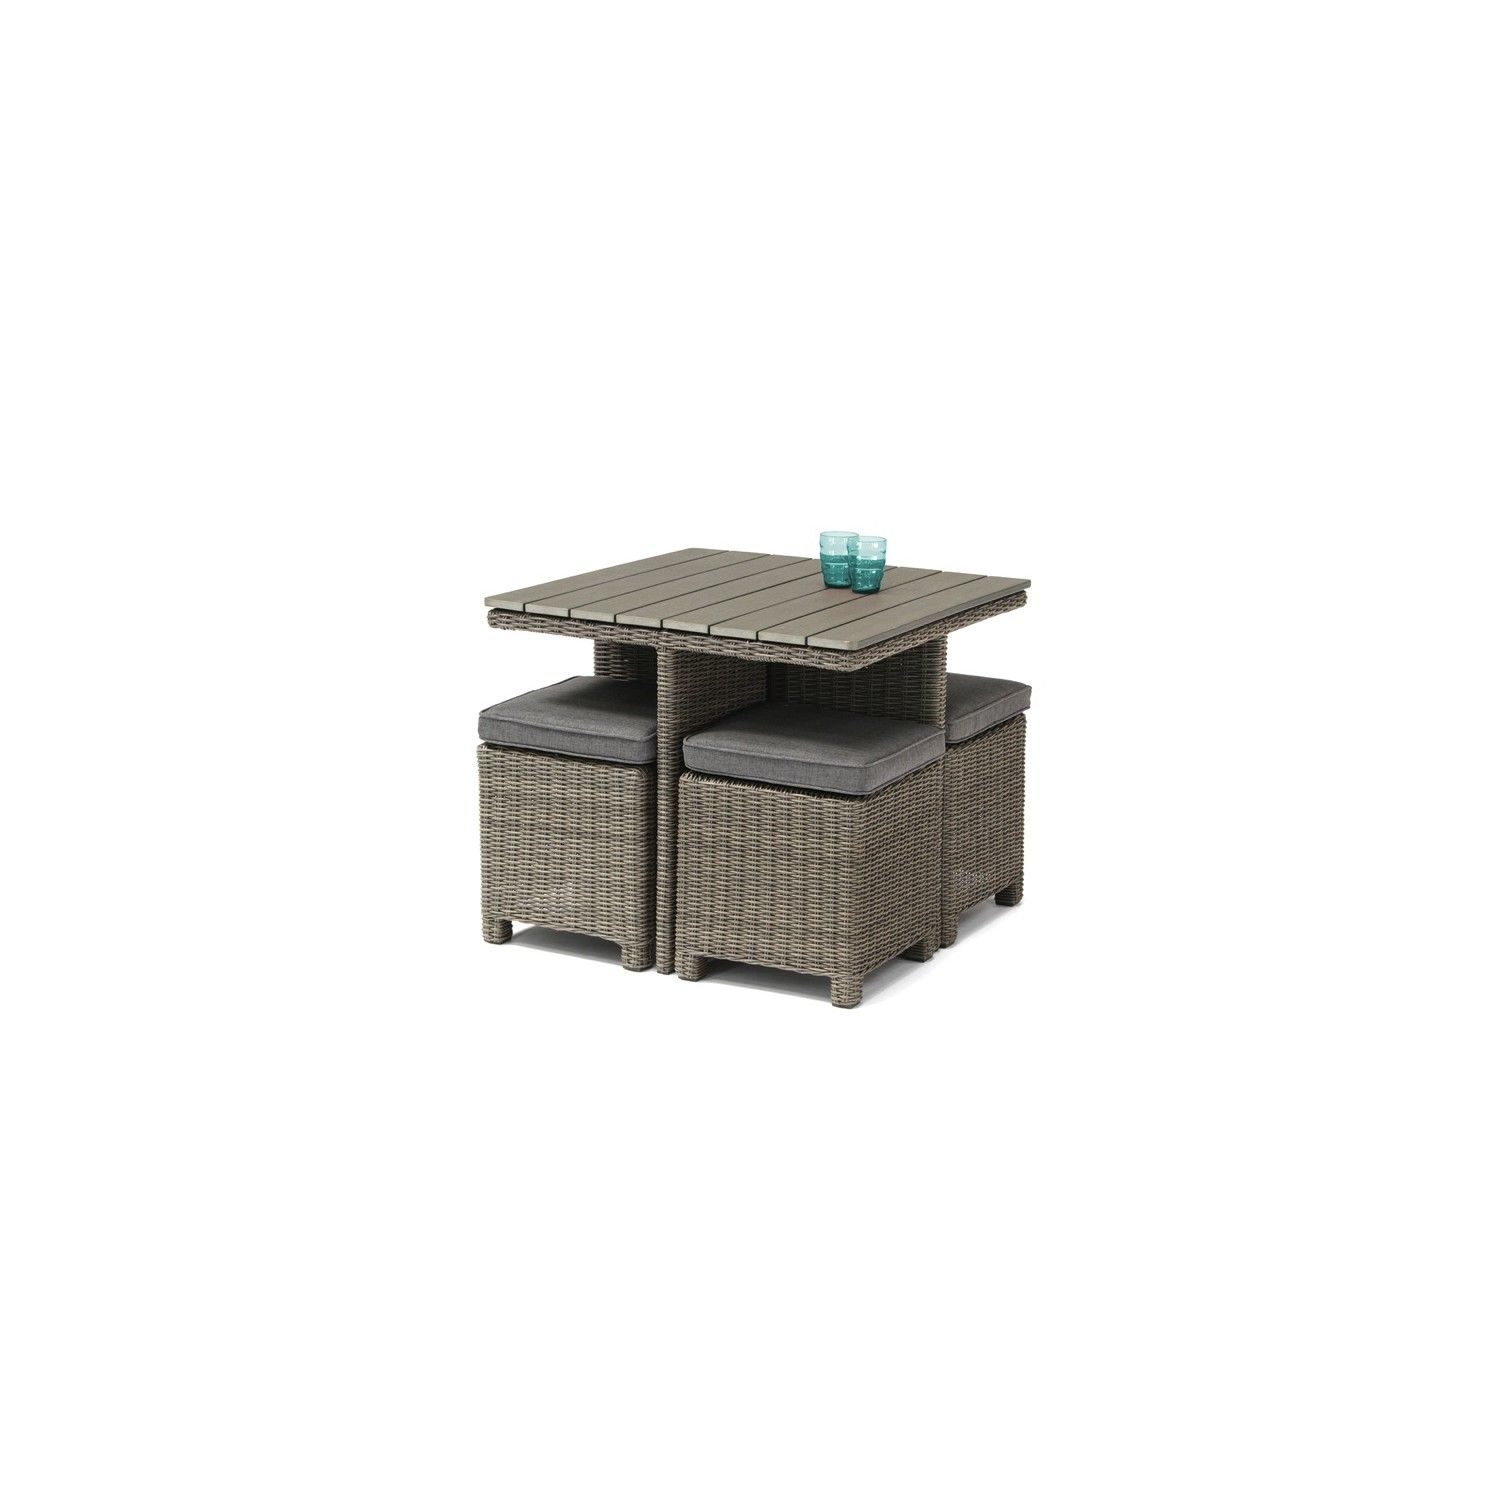 Garden Furniture Kettler kettler palma cube rattan | garden furniture | casual dining